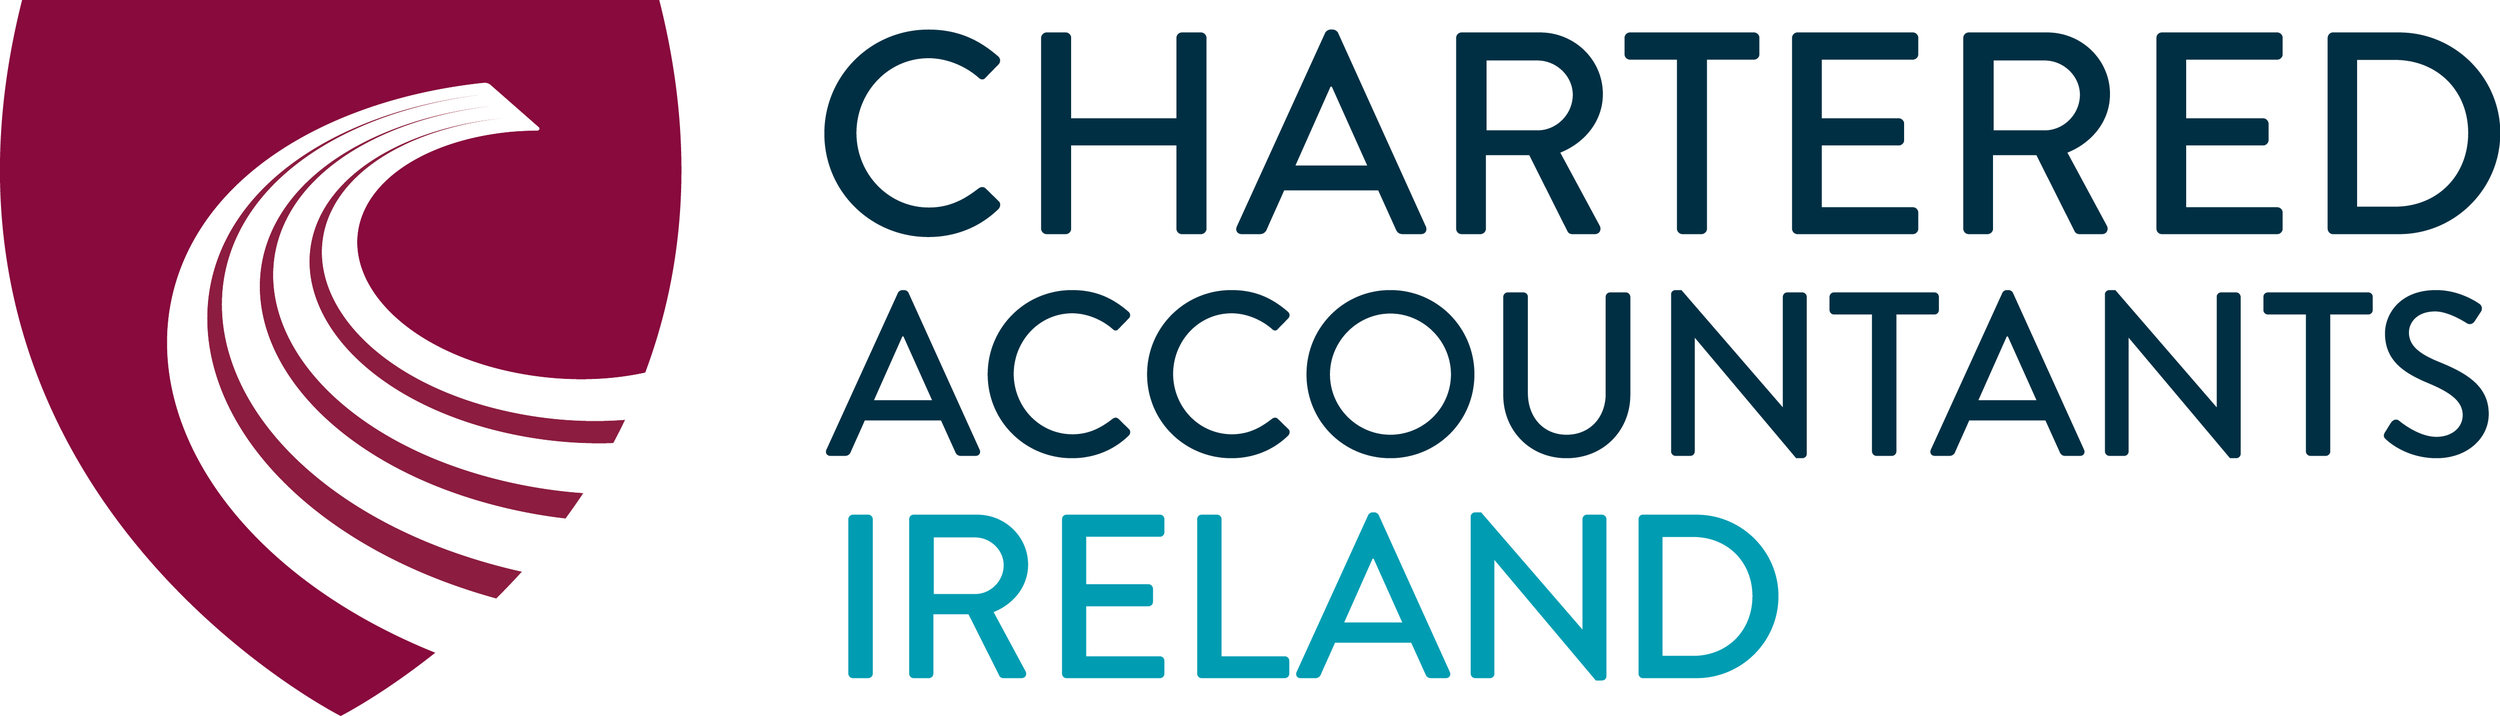 Chartered-Accountants-Ireland-Color-JPG.jpg